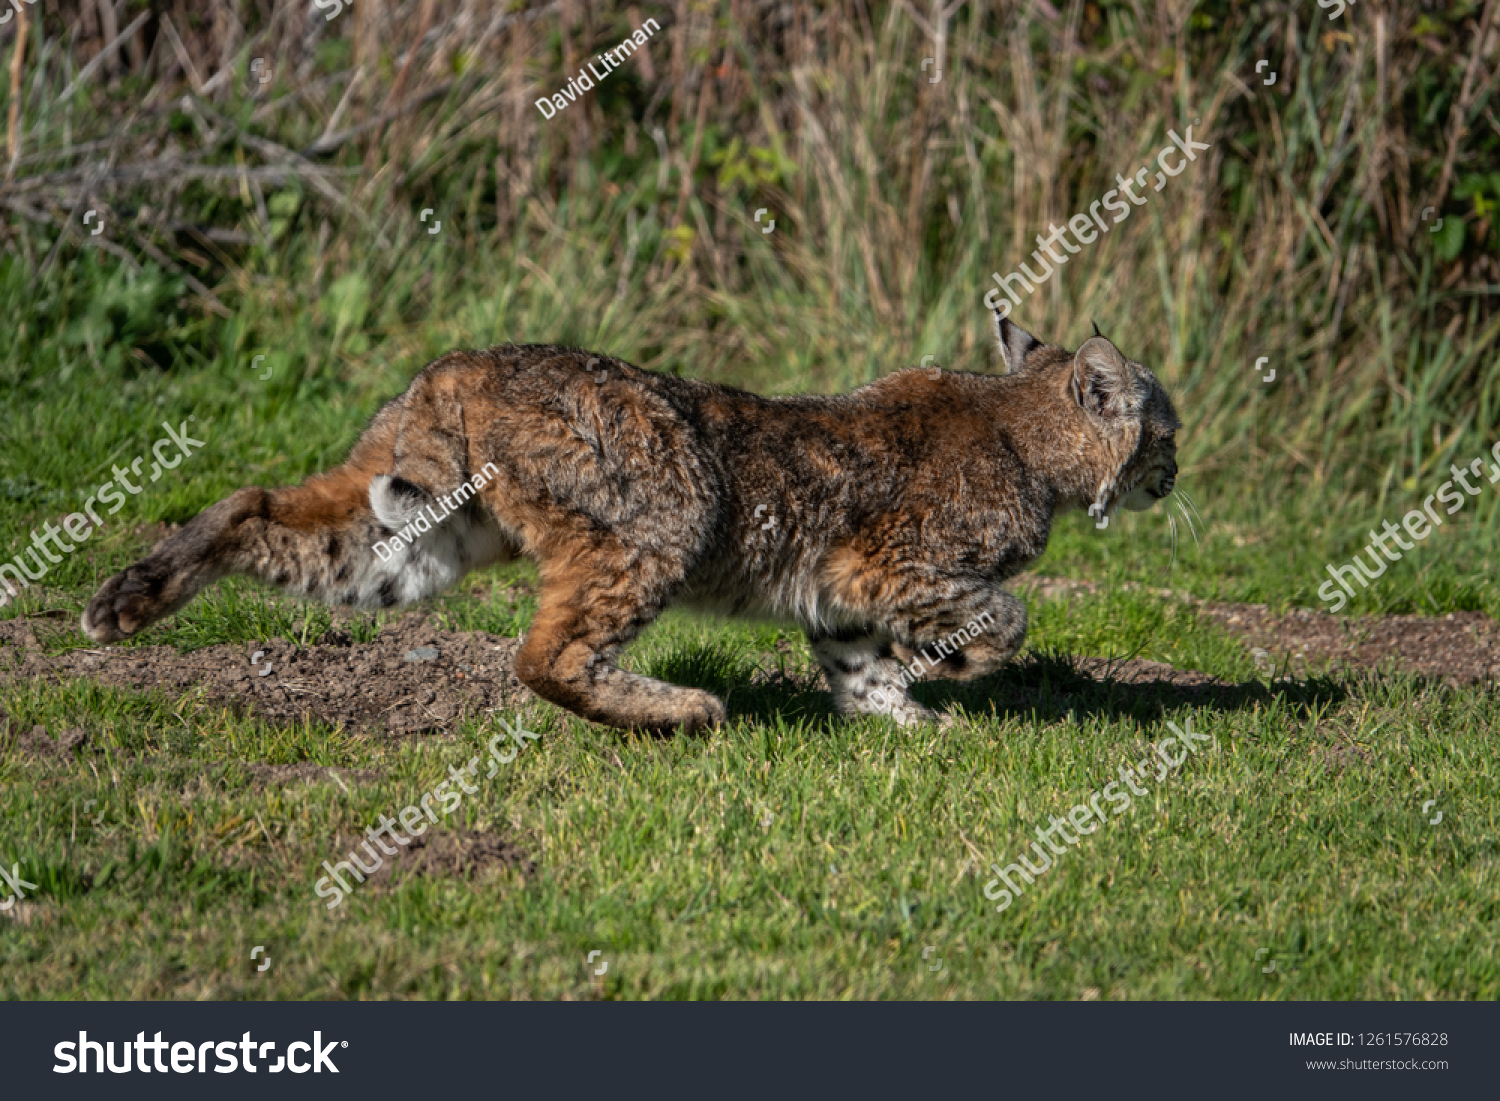 A wild Bobcat (Lynx rufus) retreats toward the brush as it runs across the lawn of a neighborhood park where it was hunting for gophers, in the hills of Monterey, California.